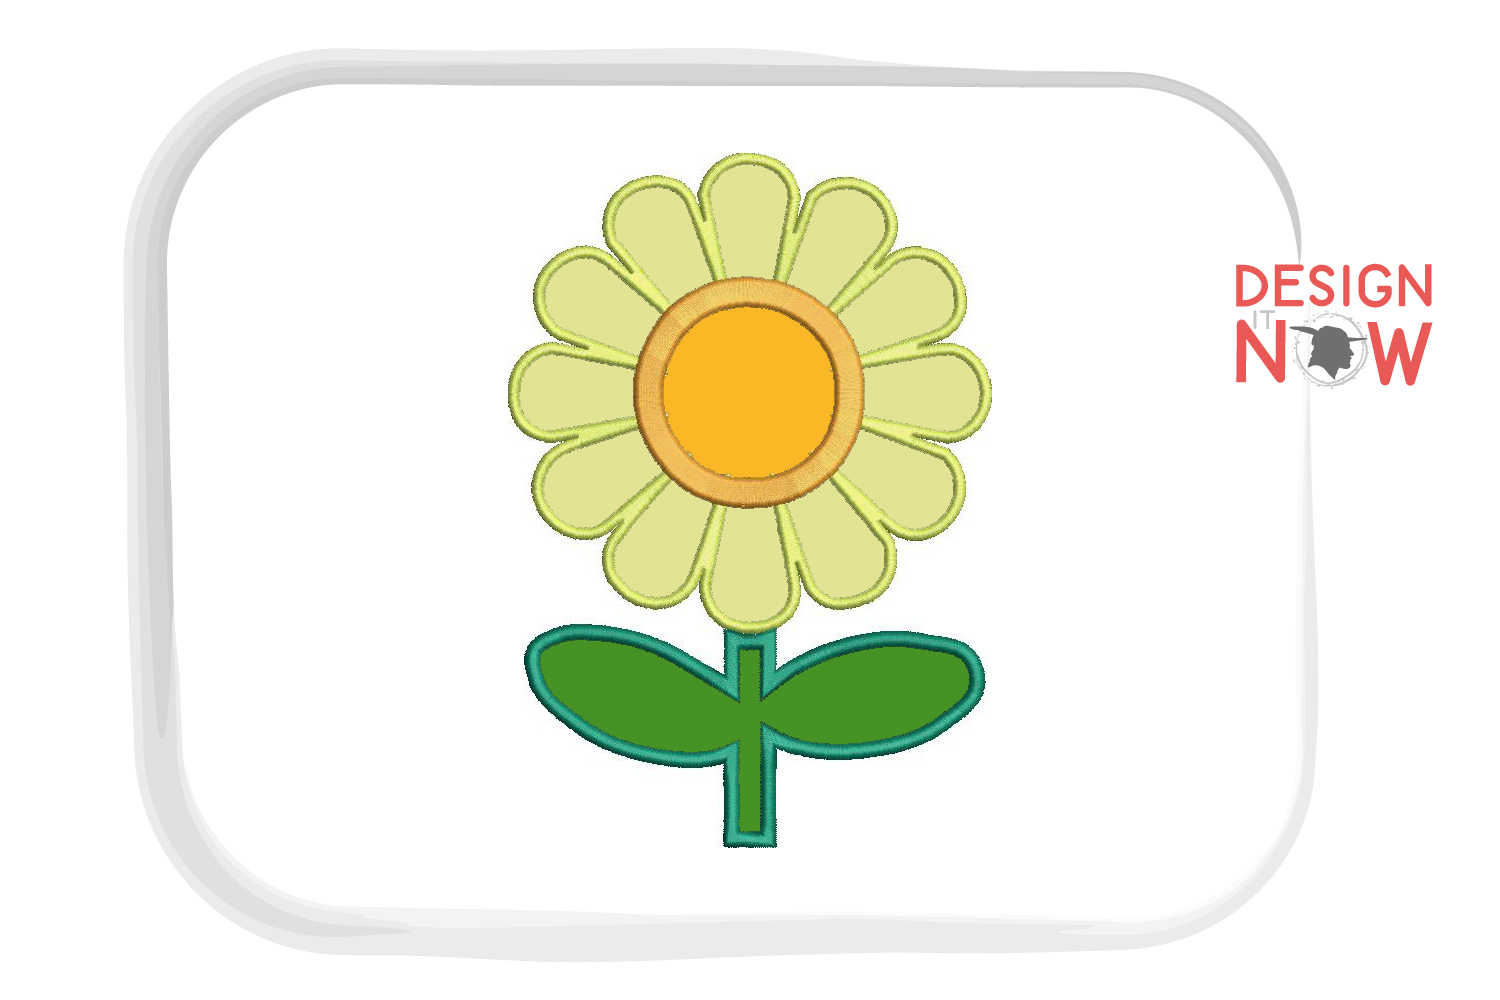 Flower Applique Embroidery Design, Flowers Embroidery example image 2